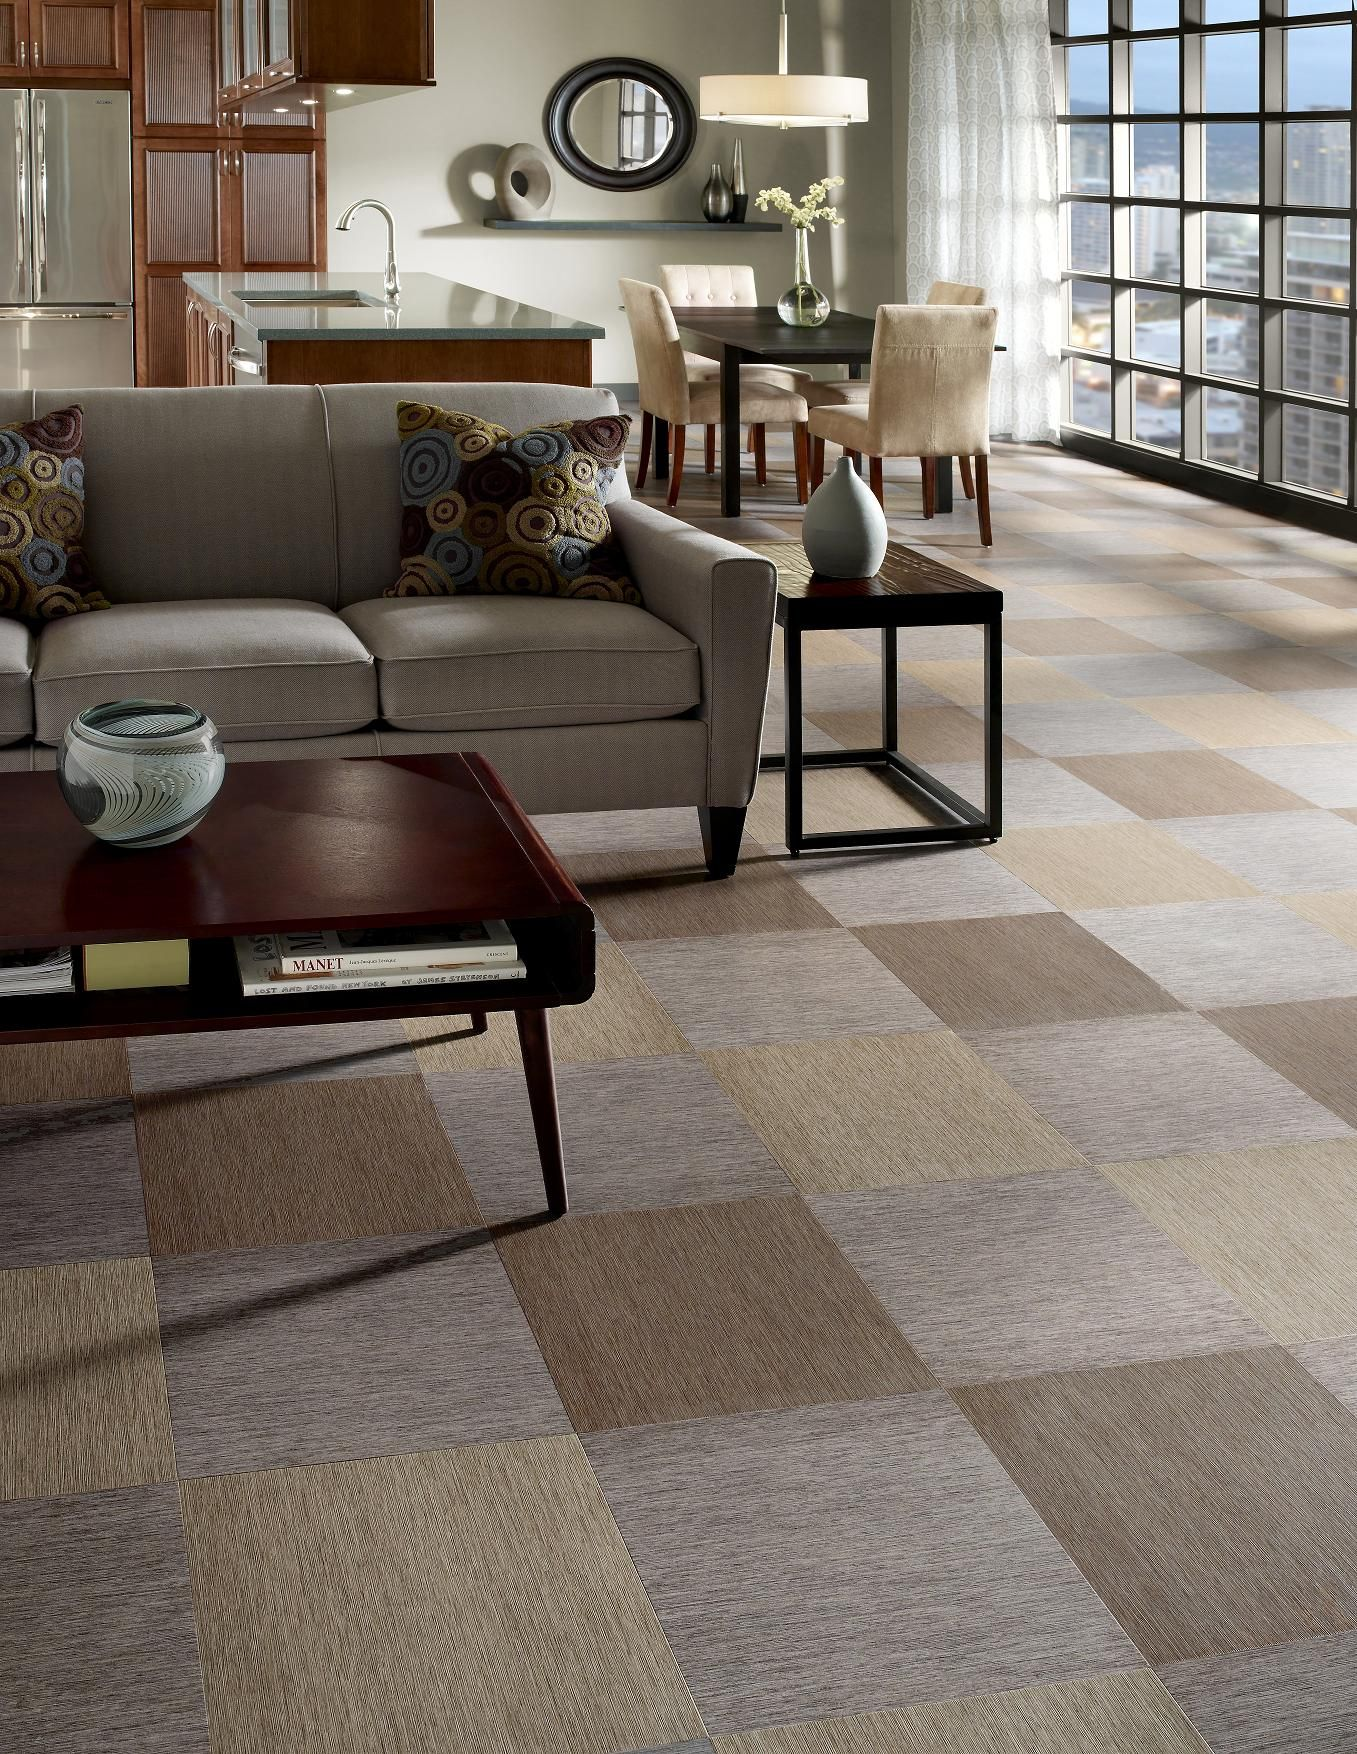 Mannington Adura Luxury Vinyl Tile Vibe Luxury vinyl